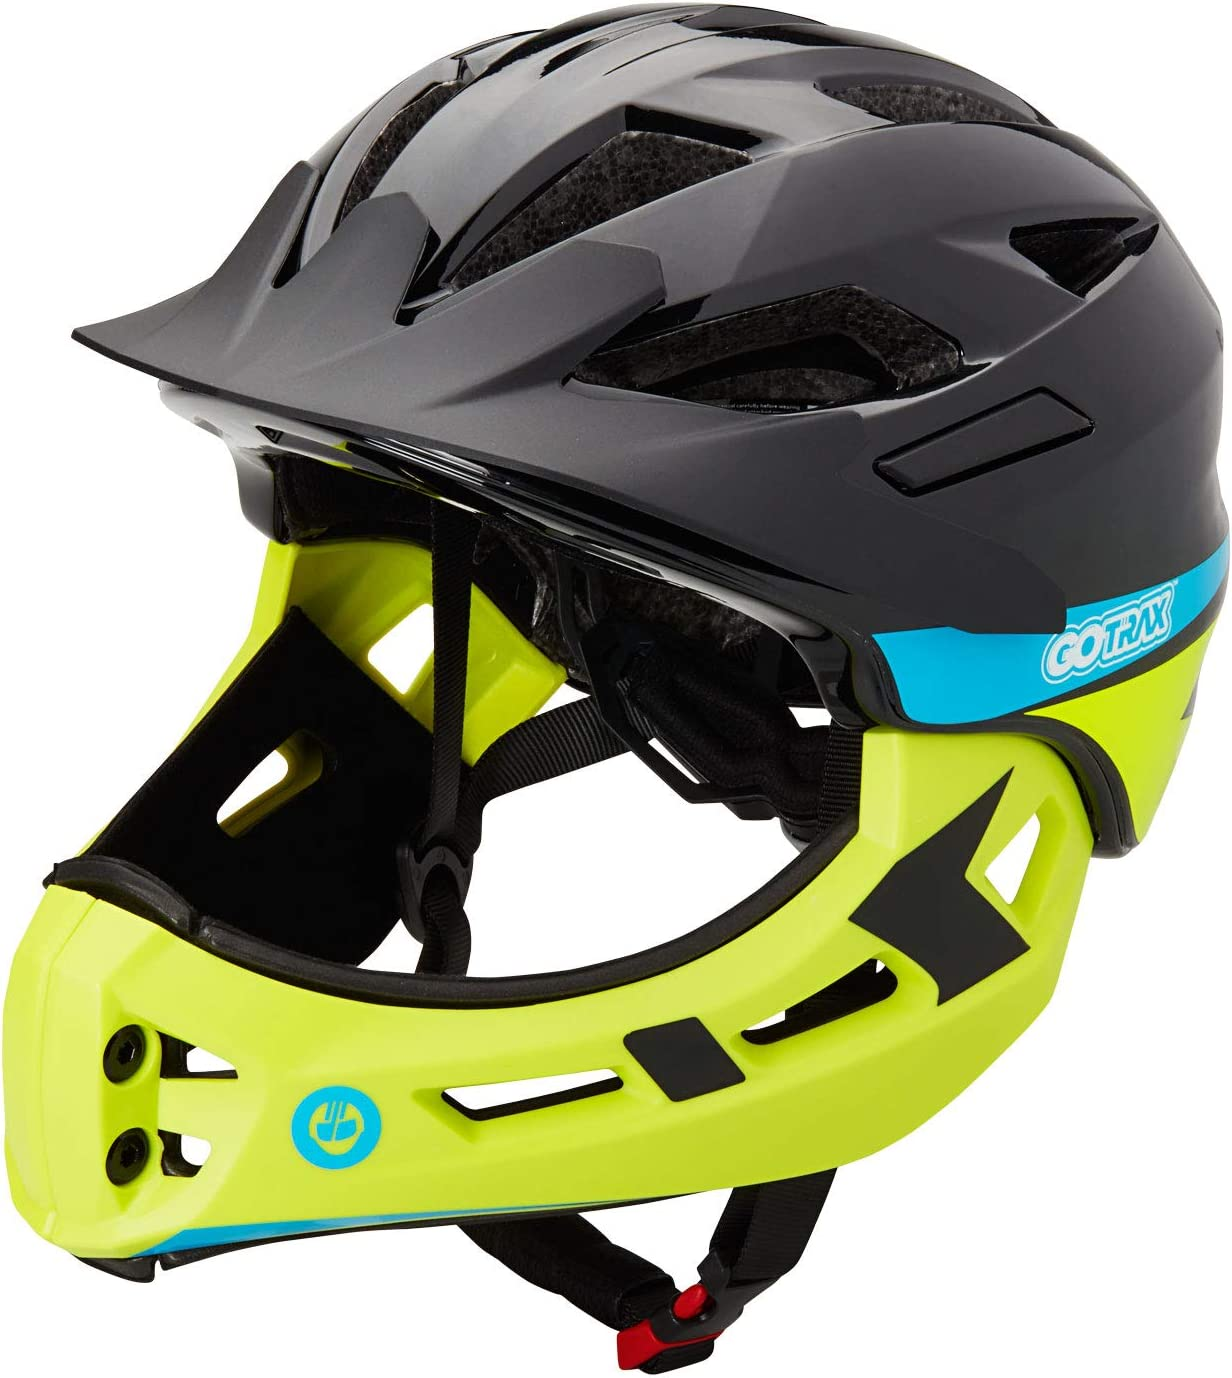 Gotrax Kids Bike Helmet, 2 in 1 Full Face Multi-Sport Helmet, CPSC Certified Ultralight Cycling Helmet 3-10 Years for Skateboarding, Scooter, Roller Skating